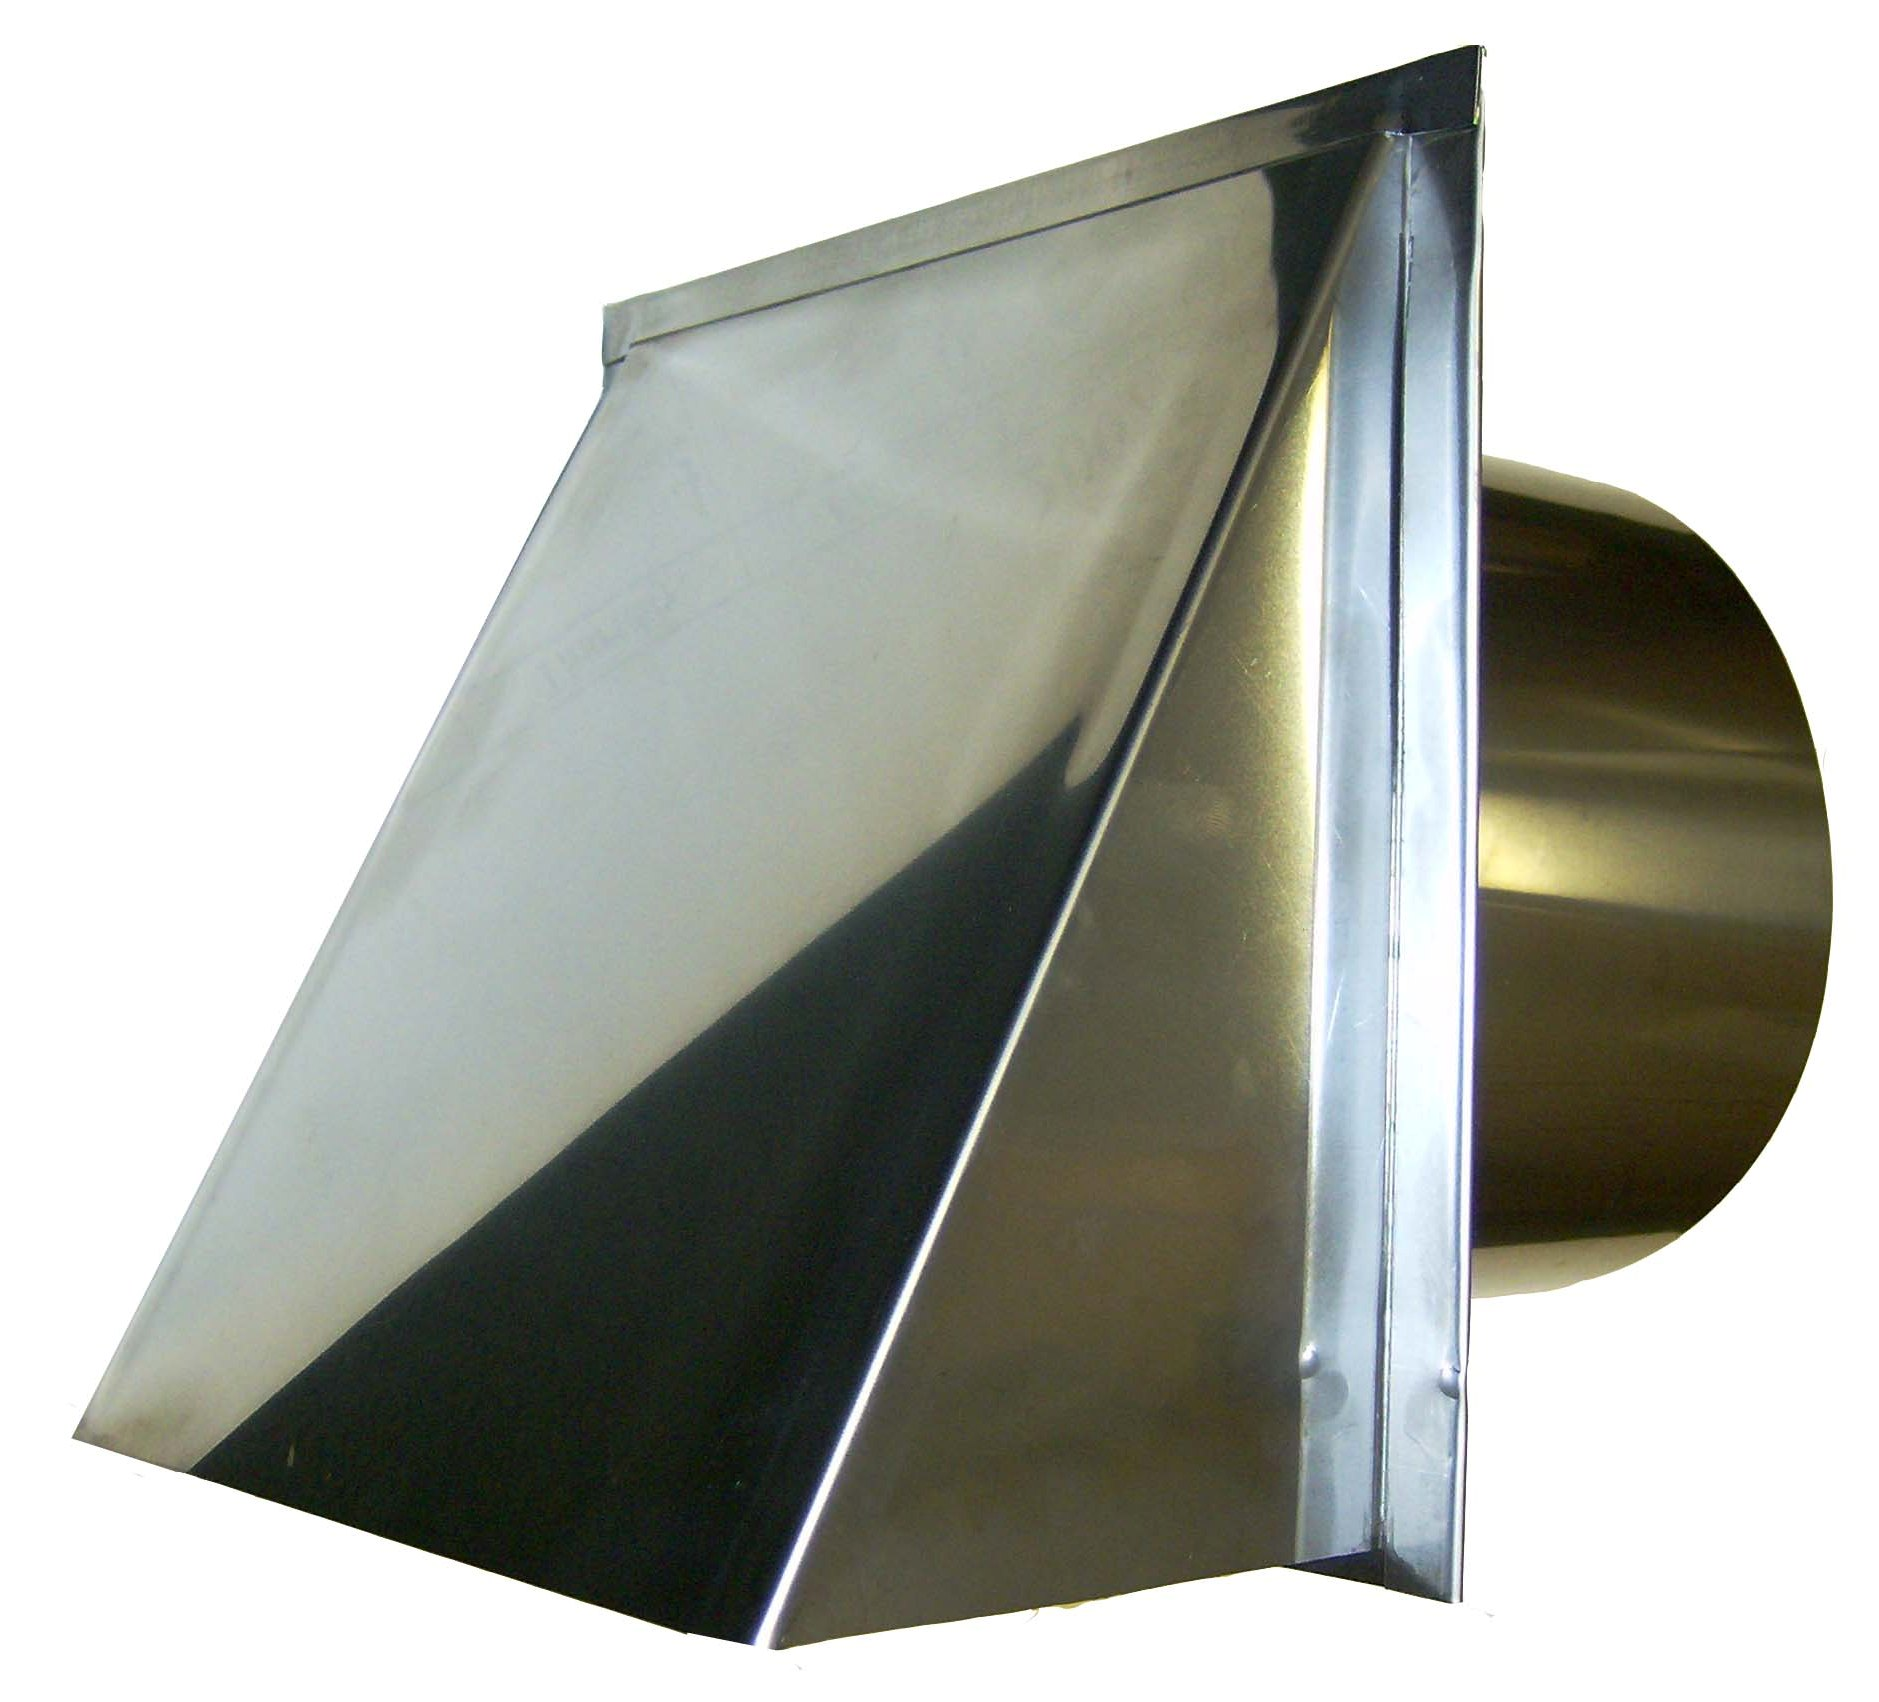 Range Exhaust Wall Vents and Roof Vents from Luxury Metals for Roof Kitchen Exhaust Fan  75tgx